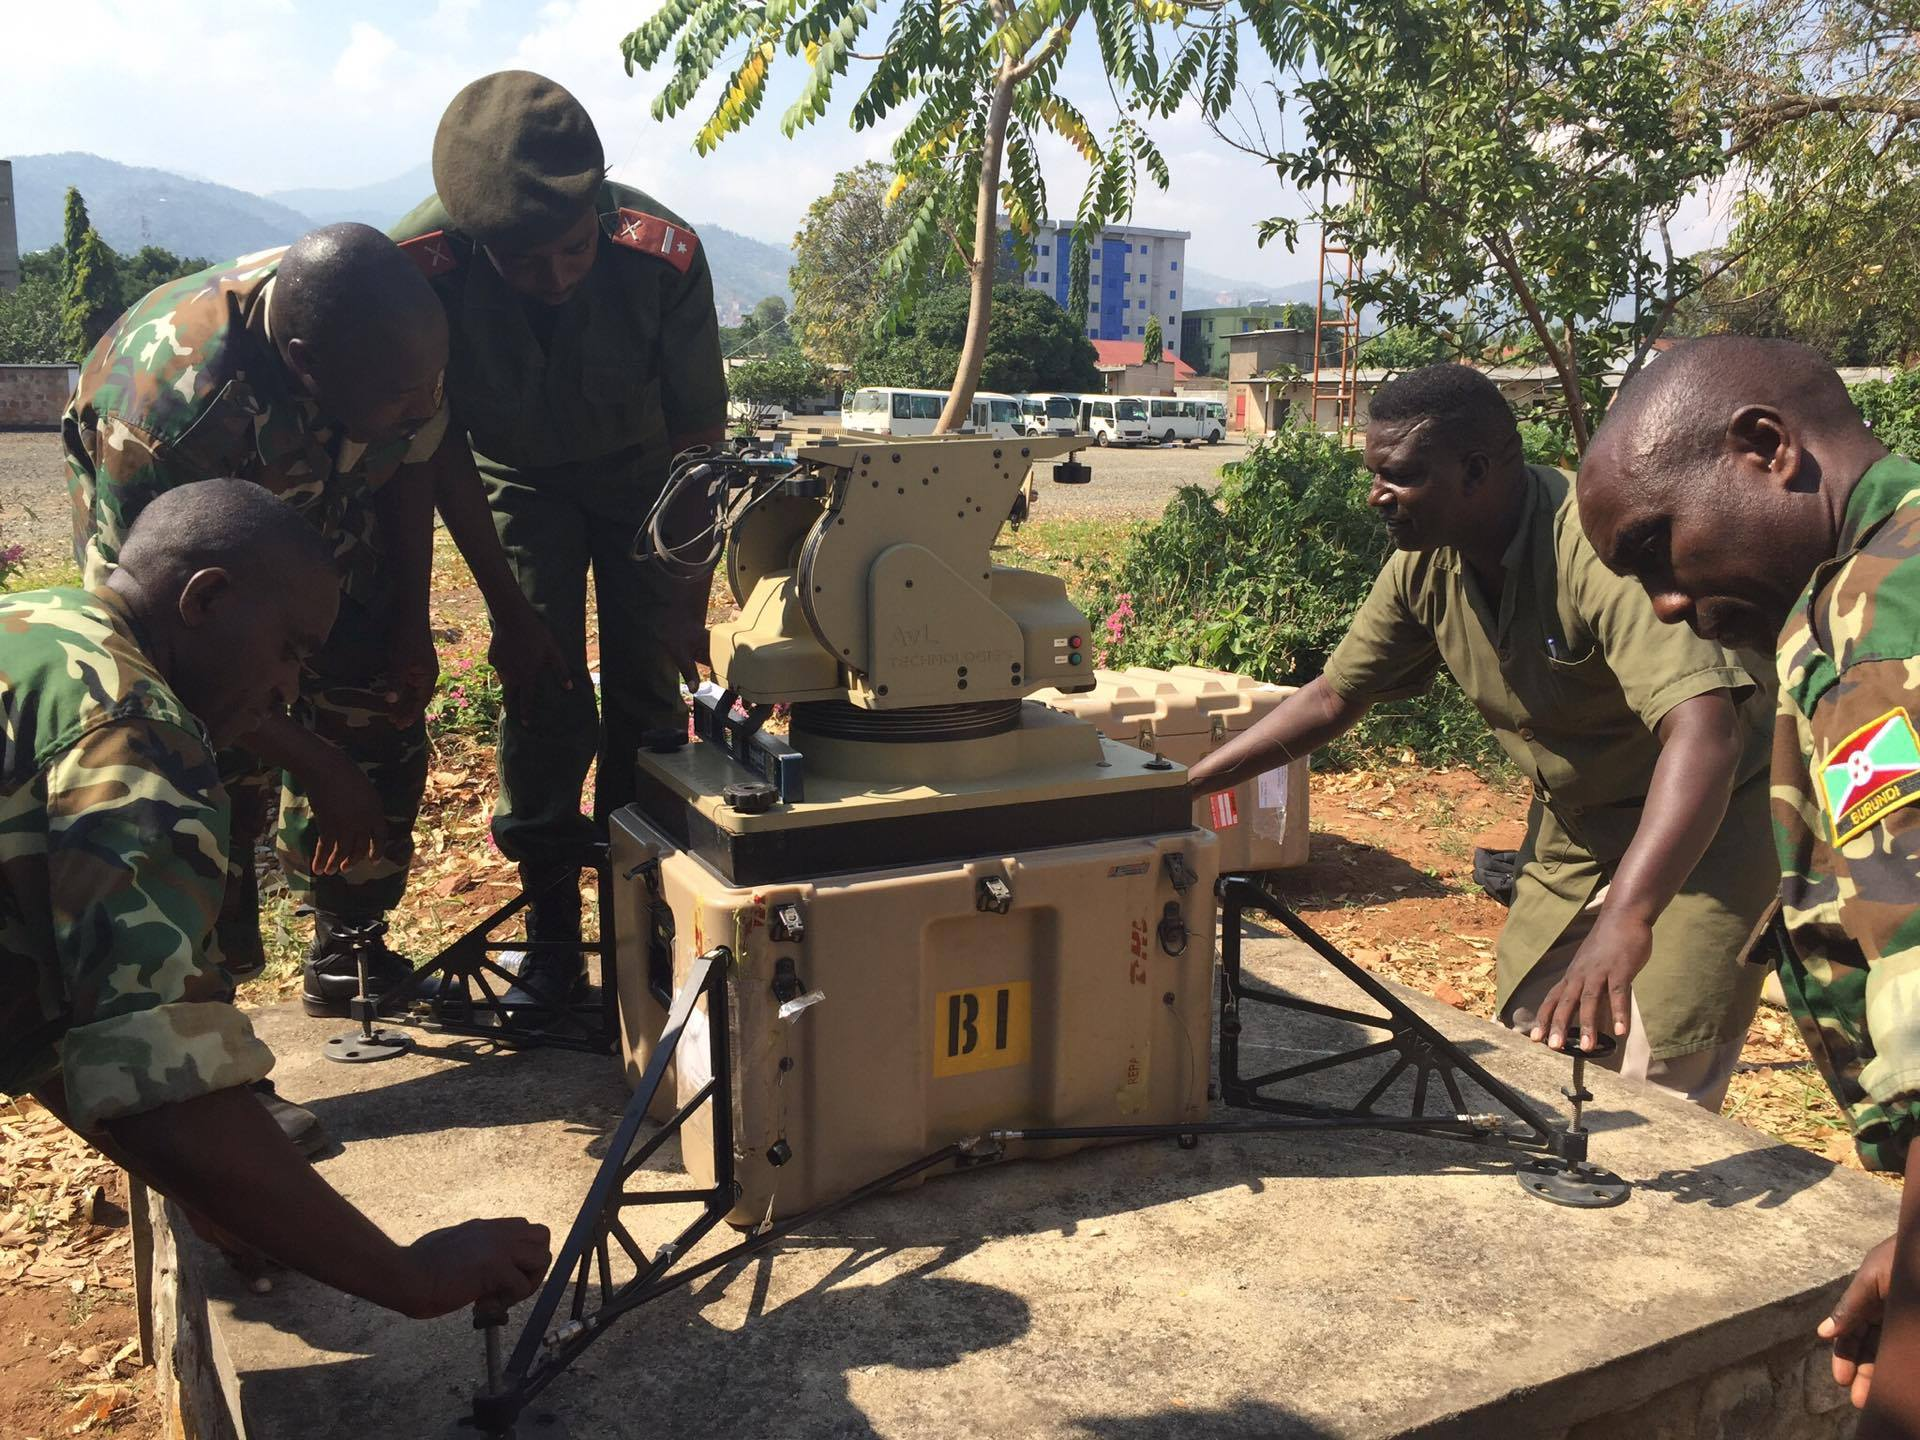 Burundian National Defense Force Soldiers work together to install their African Data Sharing Network termianl. Combined Joint Task Force–Horn of Africa communications Soldiers led a sharing of best practices for installing, operating, and maintaining their satellite terminal, June 8 – 17, 2016. The ADSN communication package provides a dynamic intelligence sharing platform for the African Union Mission in Somalia's troop contributing countries. (U.S. Army photo by 1st Lt. Justin R. Klatt)